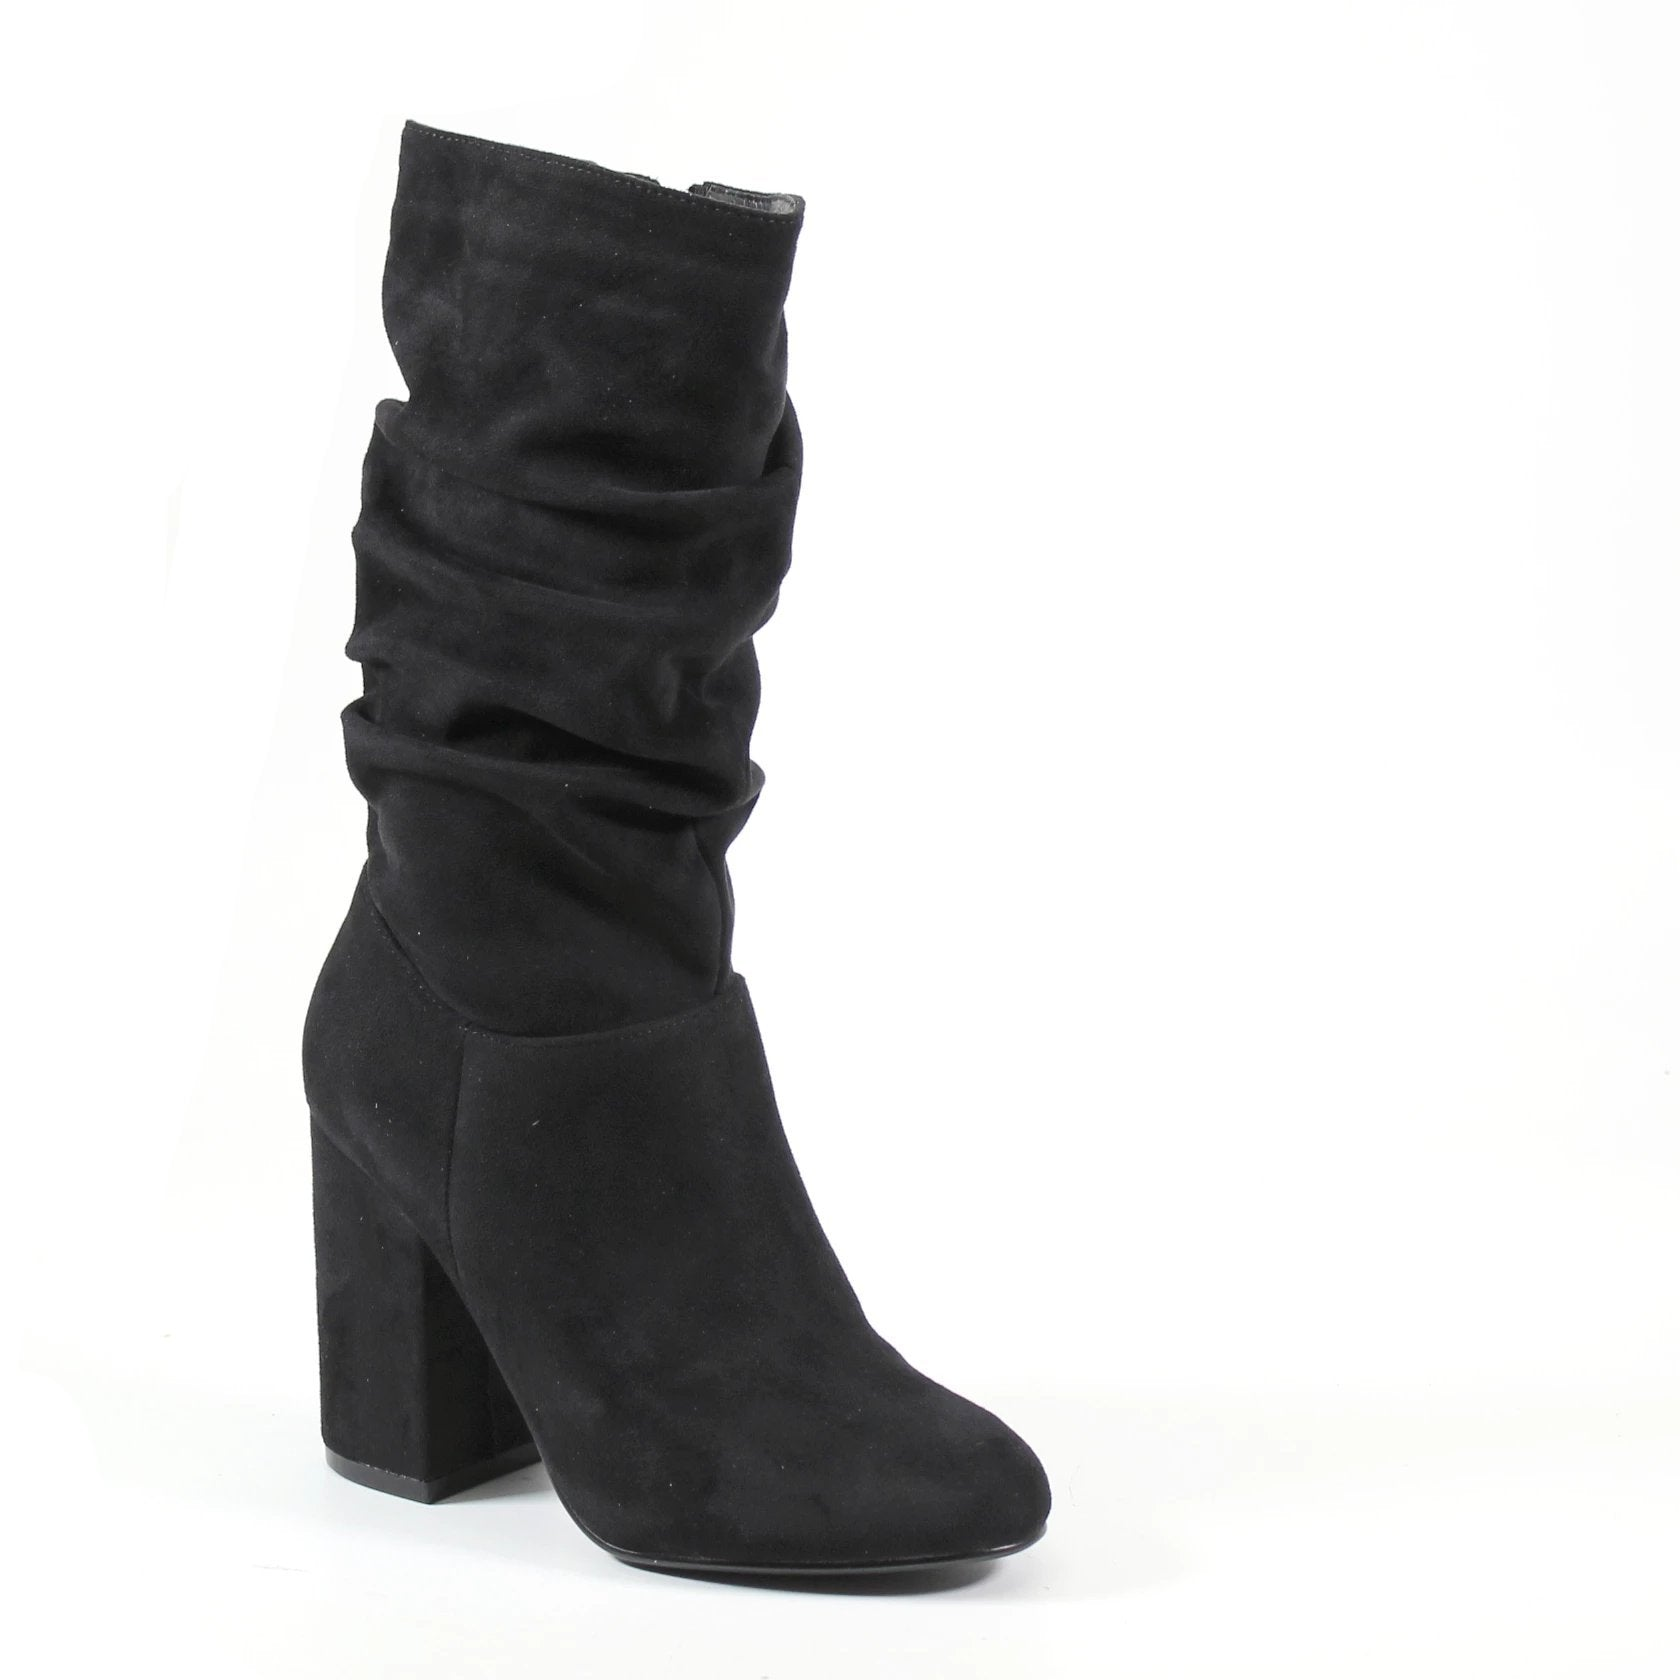 A black imi suede upper covers this scrunch boot that sits below the knee with full inside zip entry. A self-covered block heel lifts this design to new heights, easy to pair your wardrobe essentials this season.